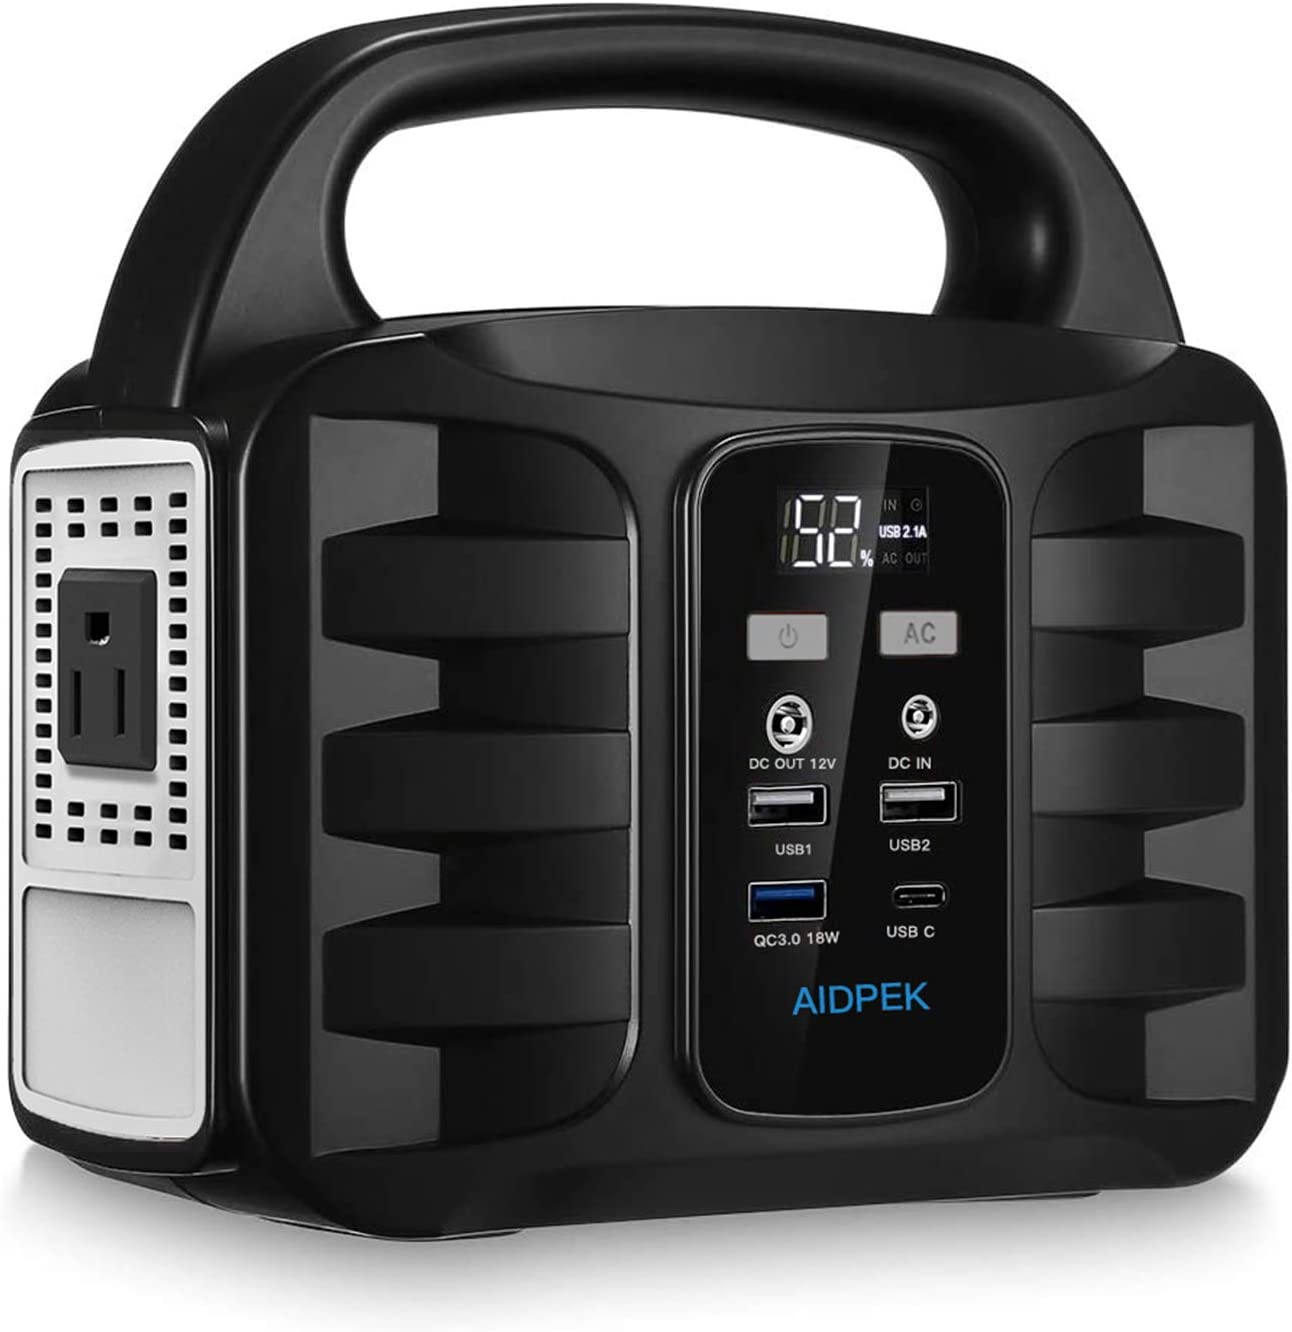 AIDPEK 100W Portable Power Station,155Wh 42000MAH Camping Solar Generators with 2 DC Ports,USB QC3.0, LED Flashlights for CPAP Home Camping Emergency